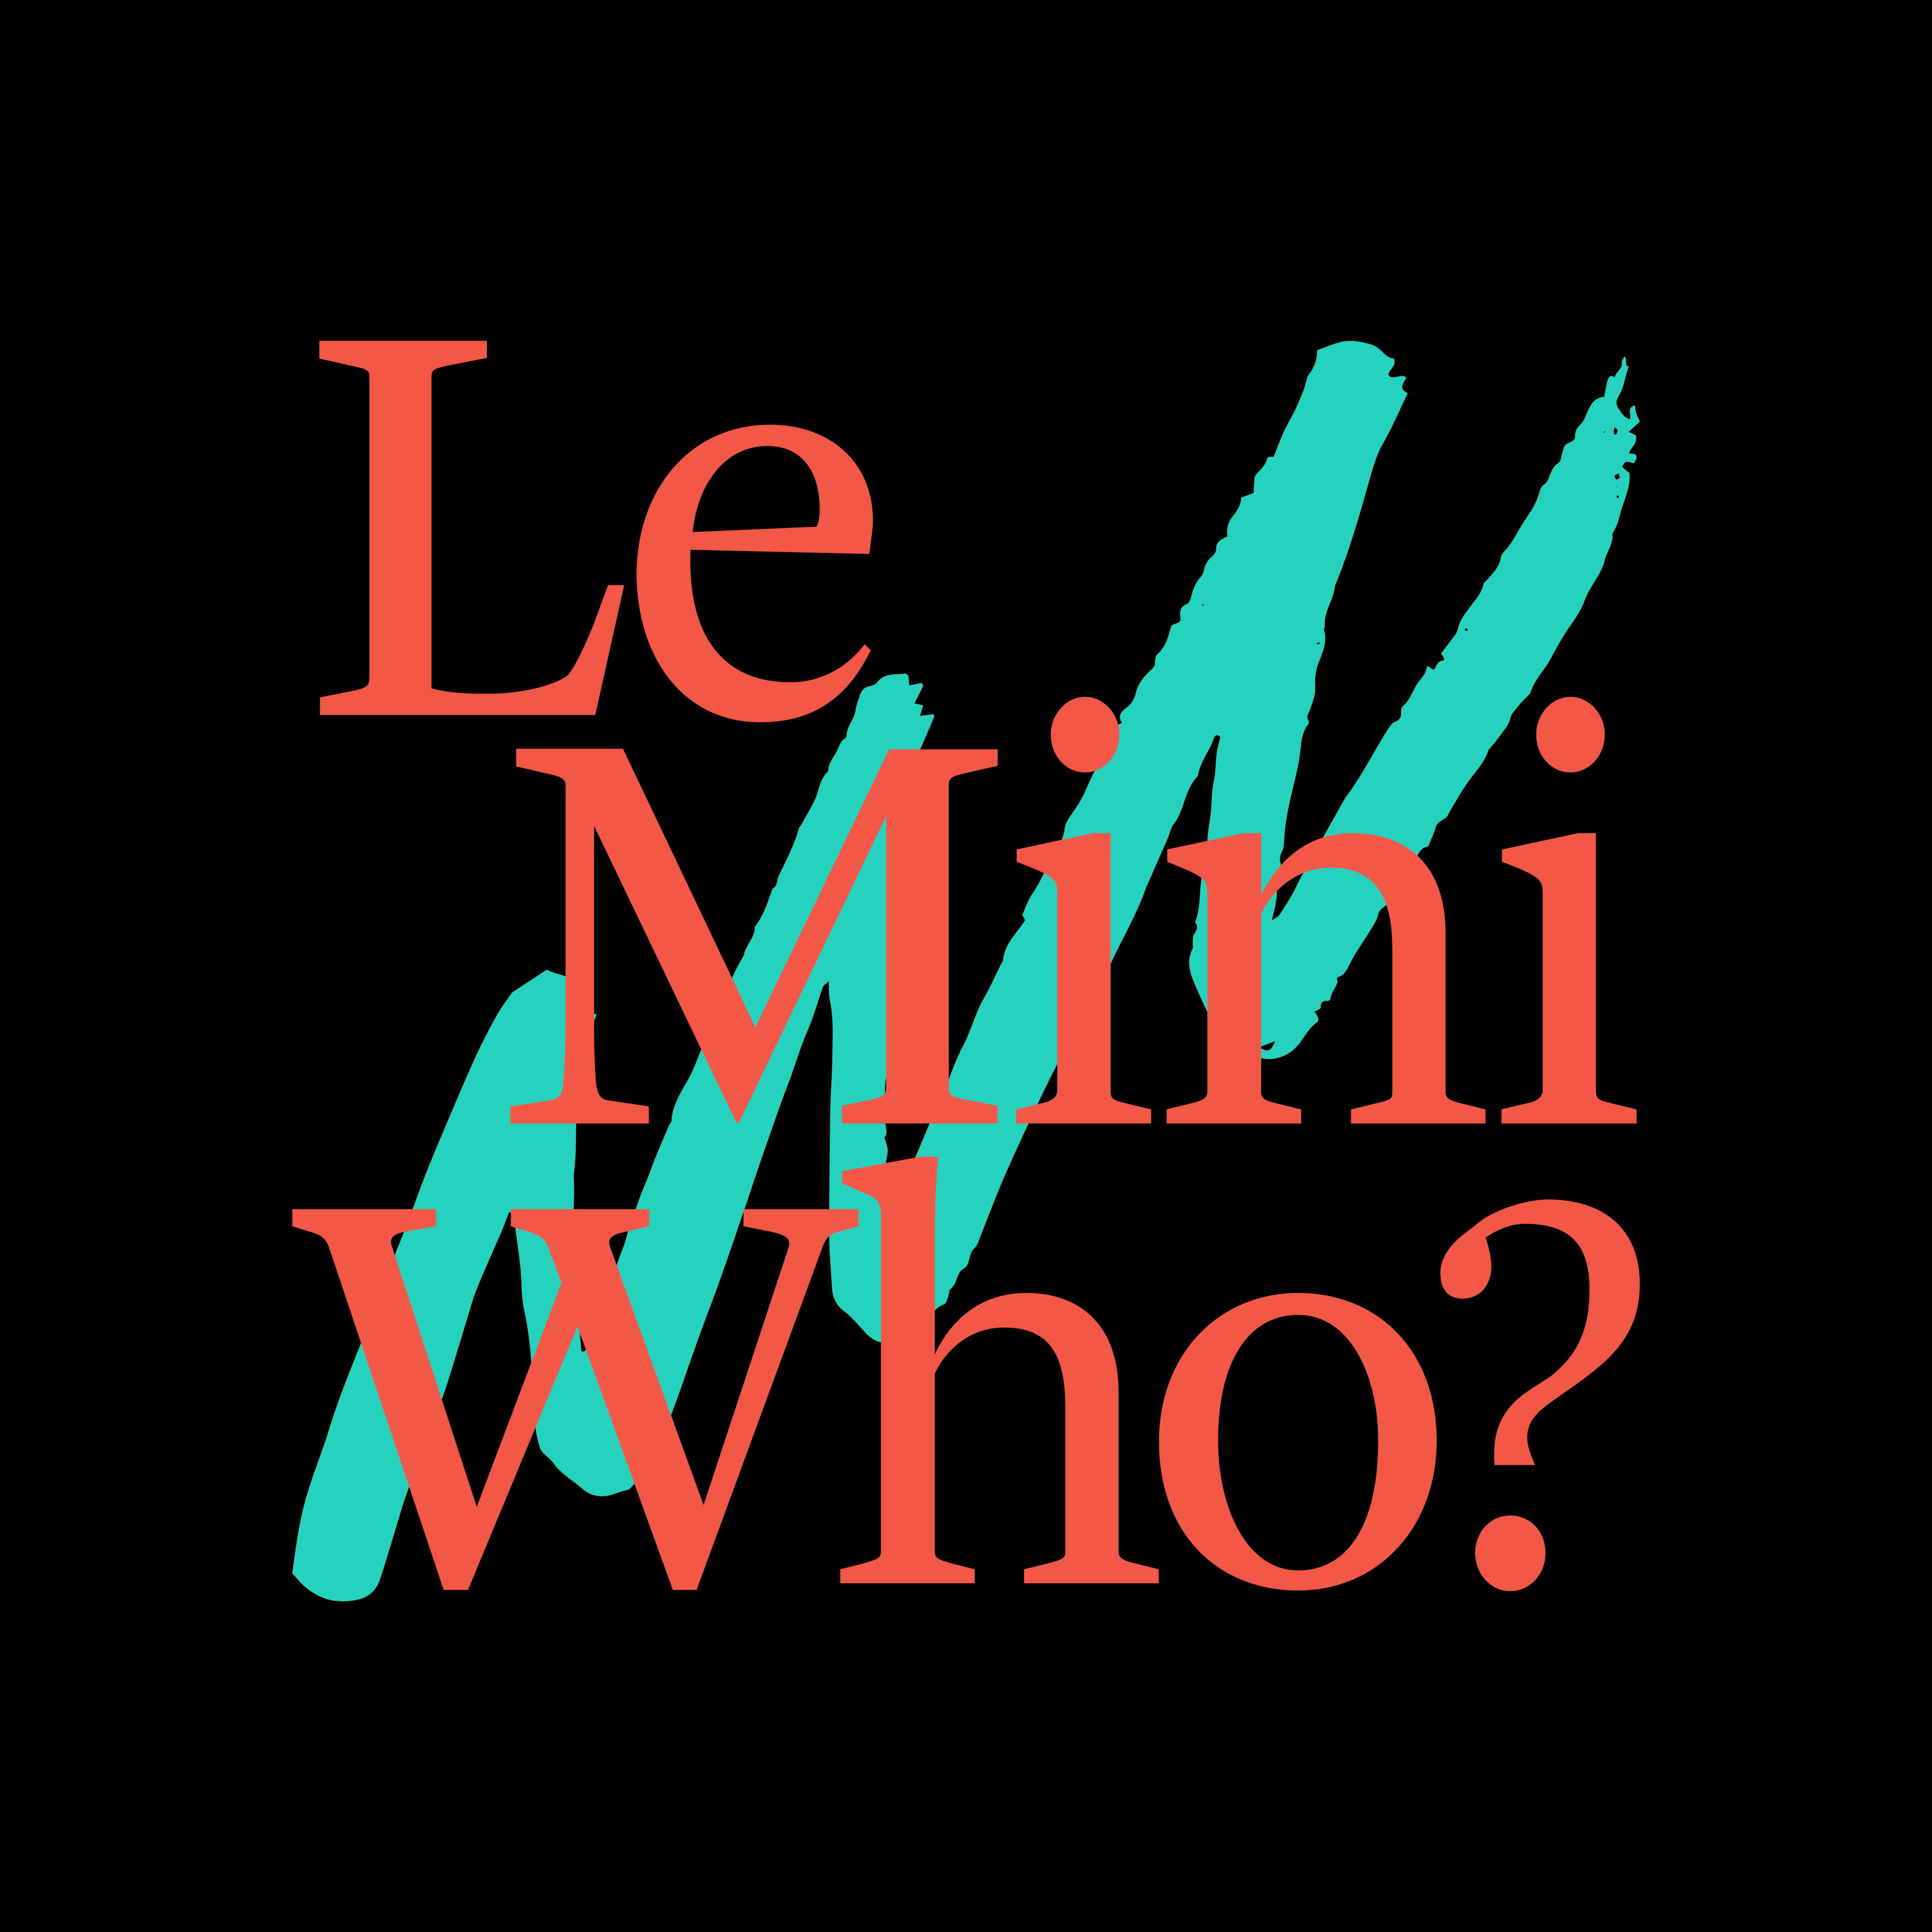 Le Mini Who? returns as part of LGW18; 10th Anniversary edition marks move to Rotsoord